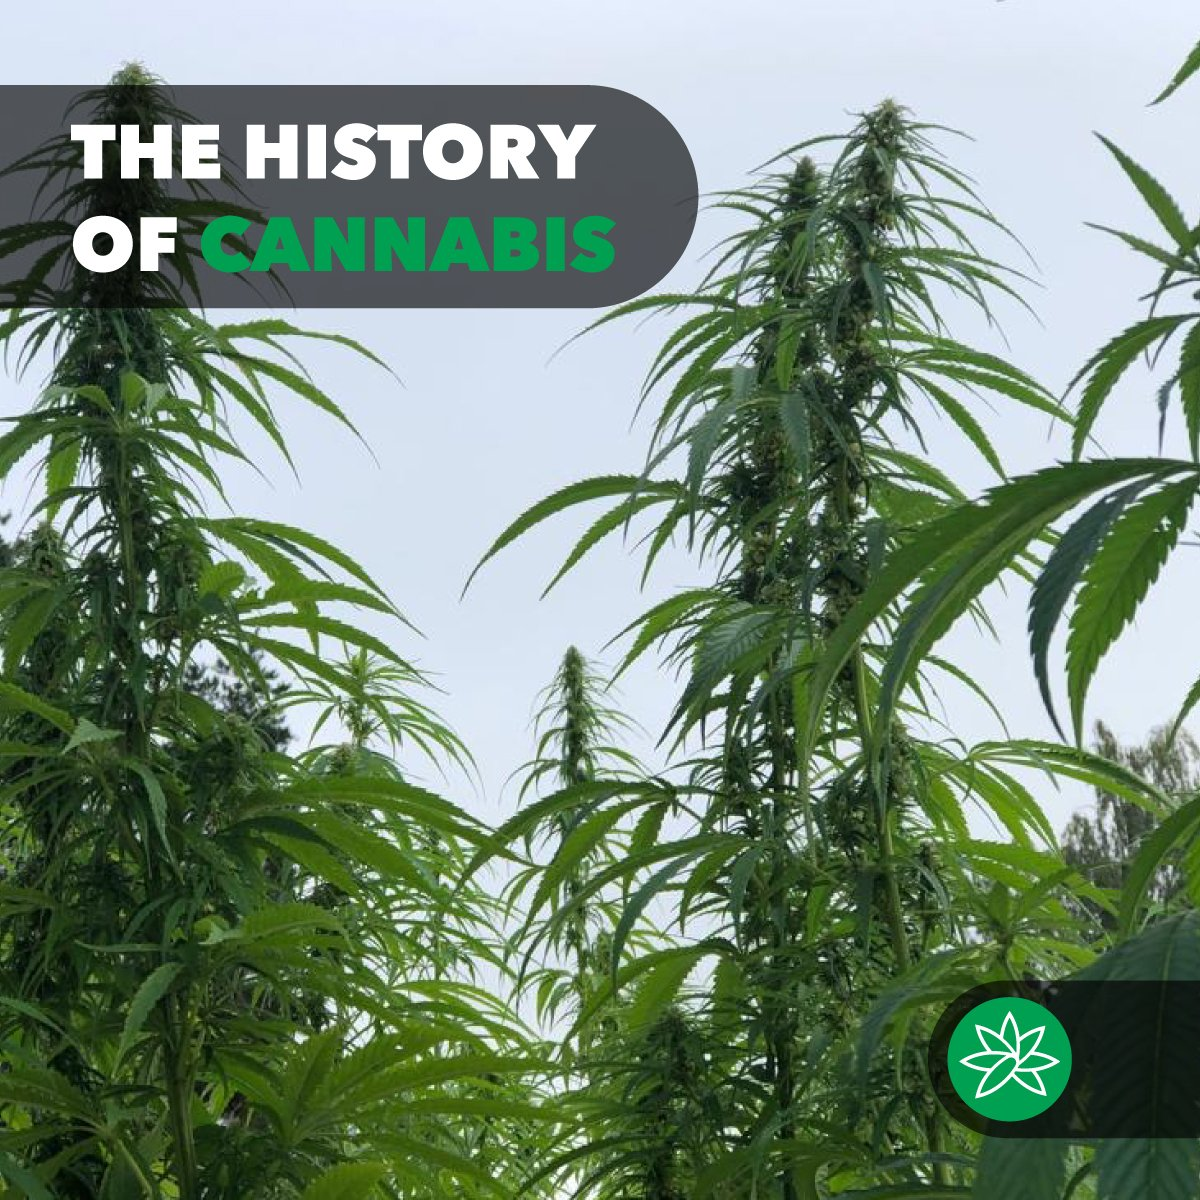 The history of cannabis